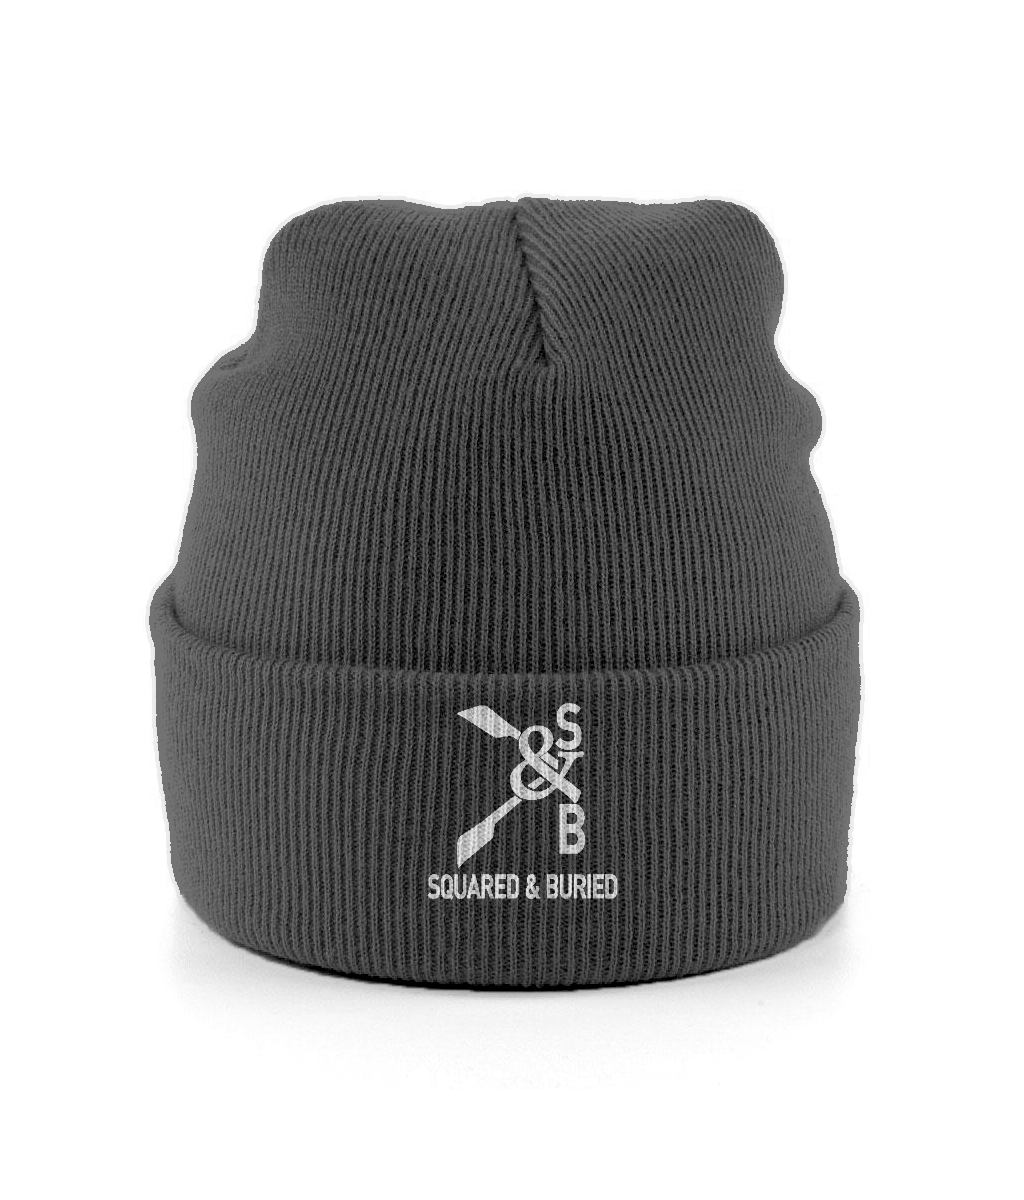 CUFFED S&B ROWING BEANIE - British Rowing Apparel - Squared & Buried